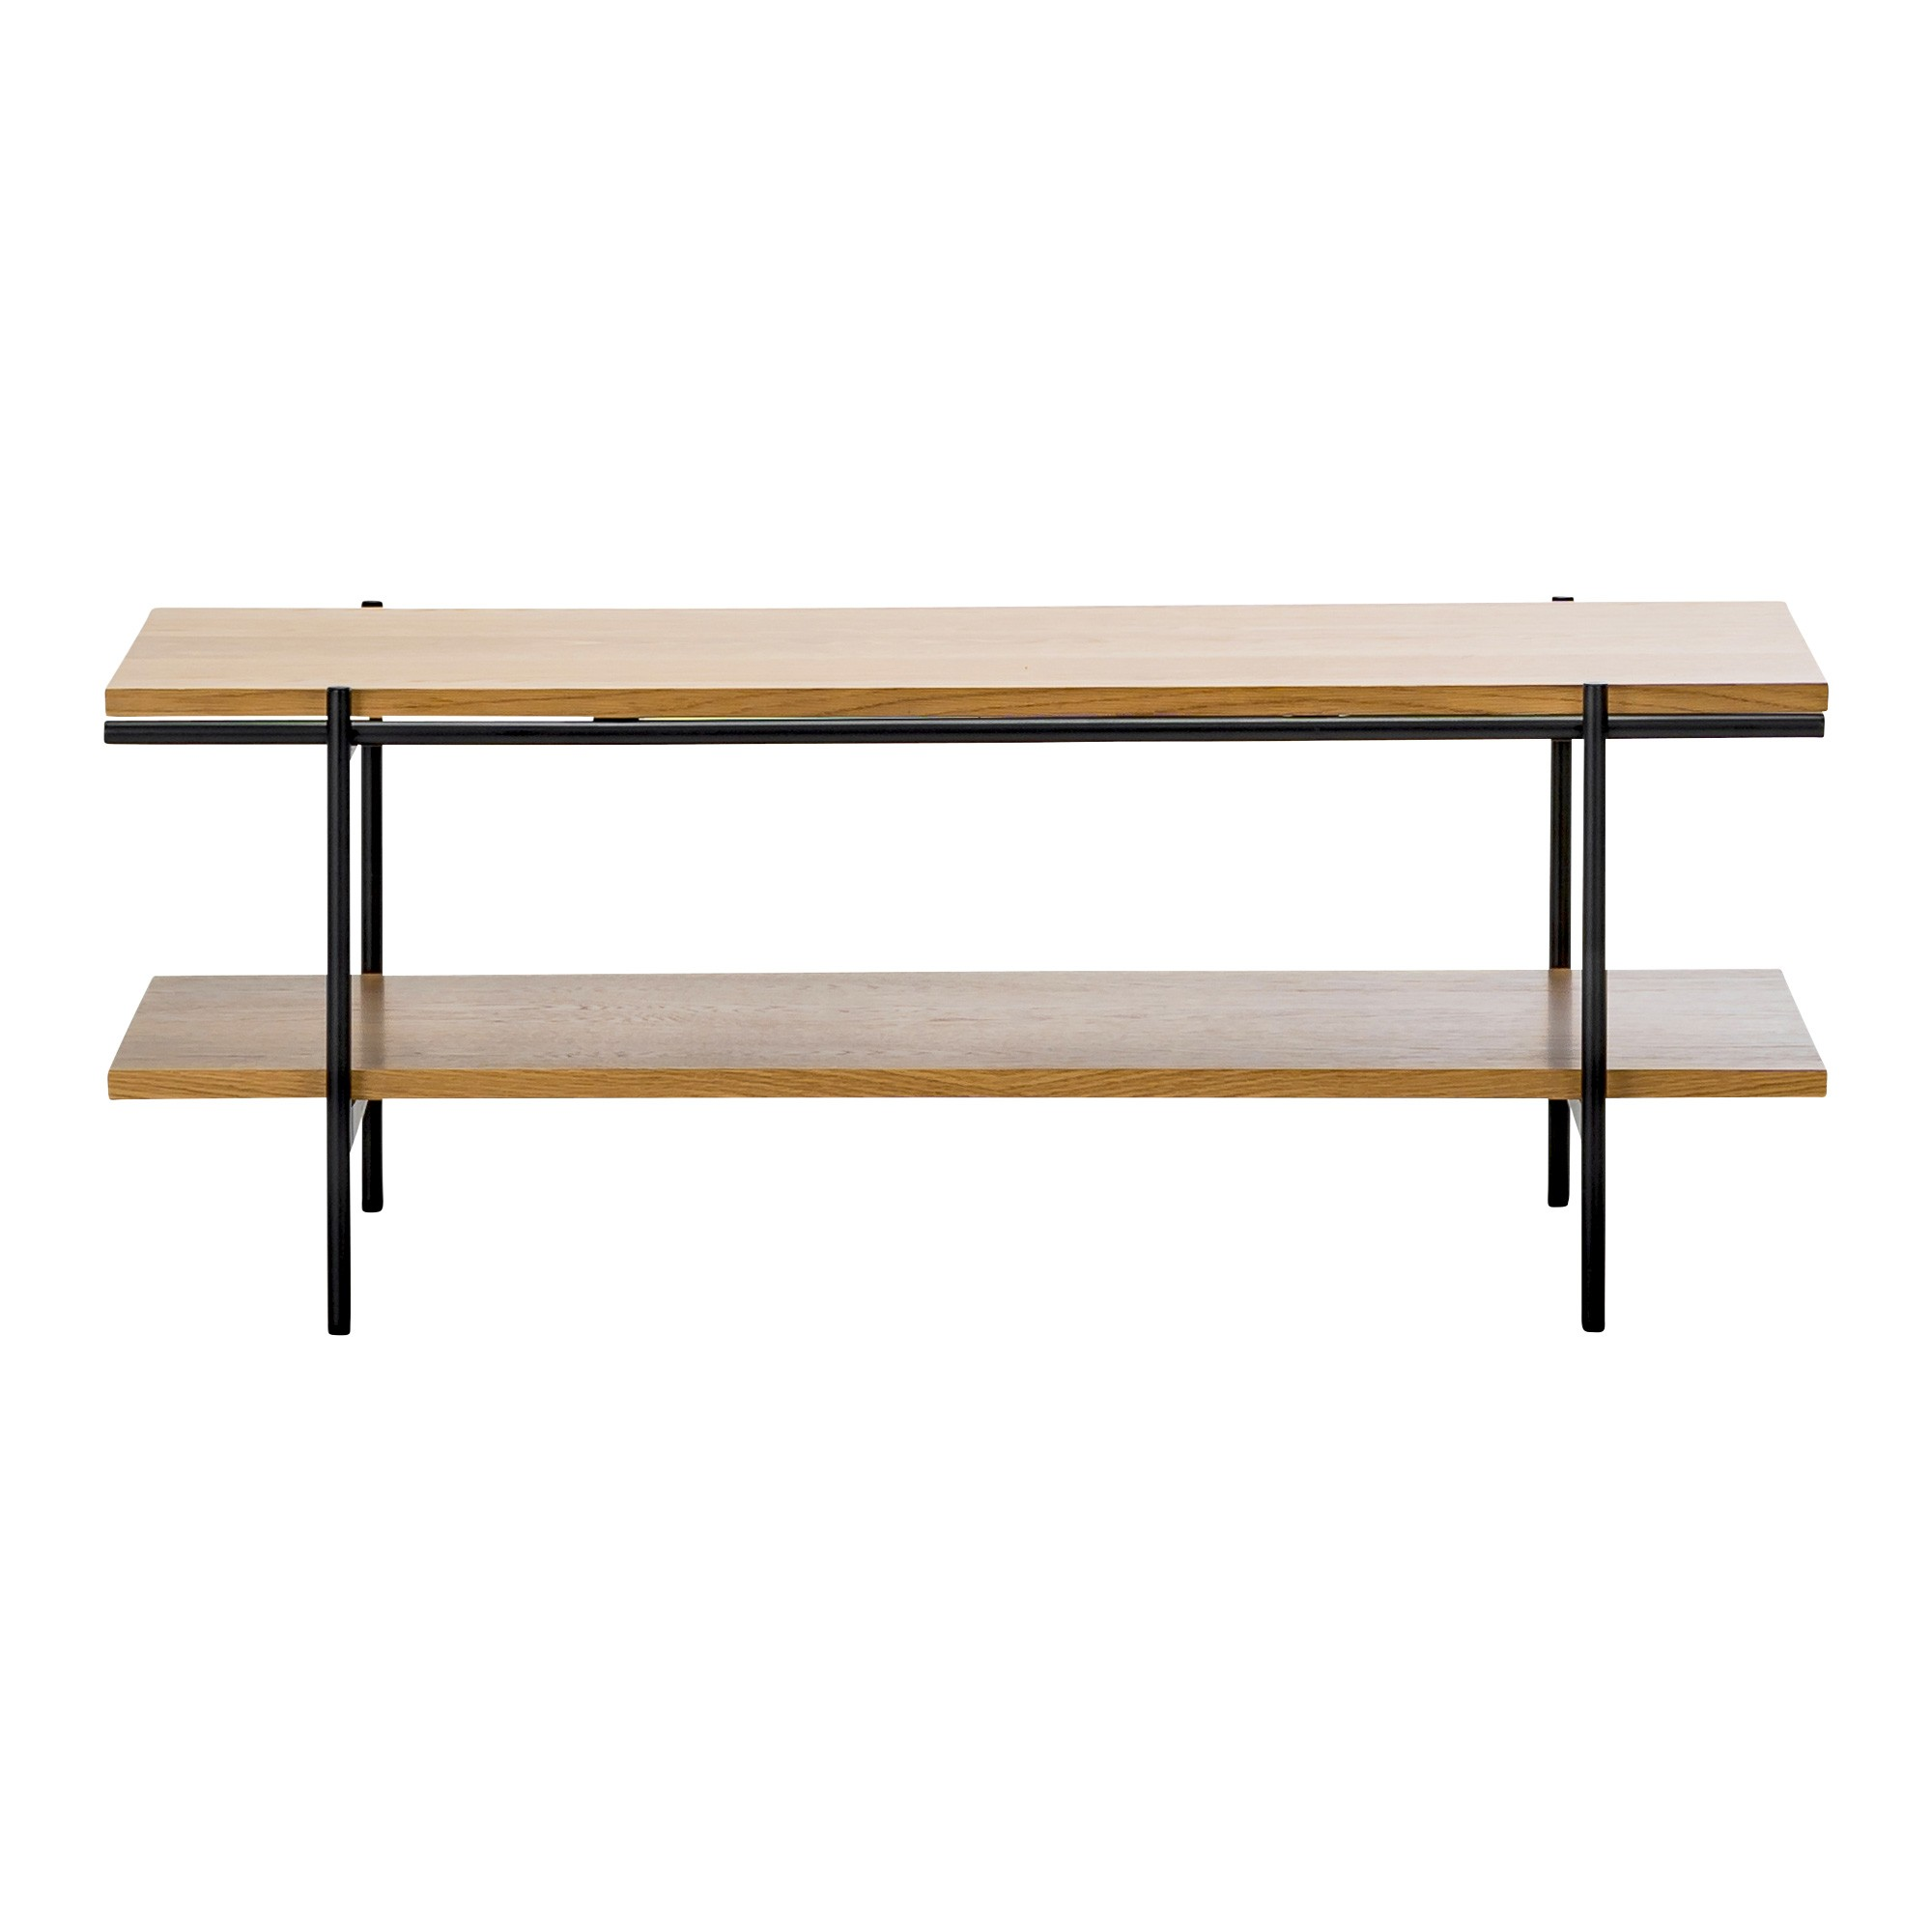 Xaviar Dual Shelf Coffee Table, 110cm, Oak / Black